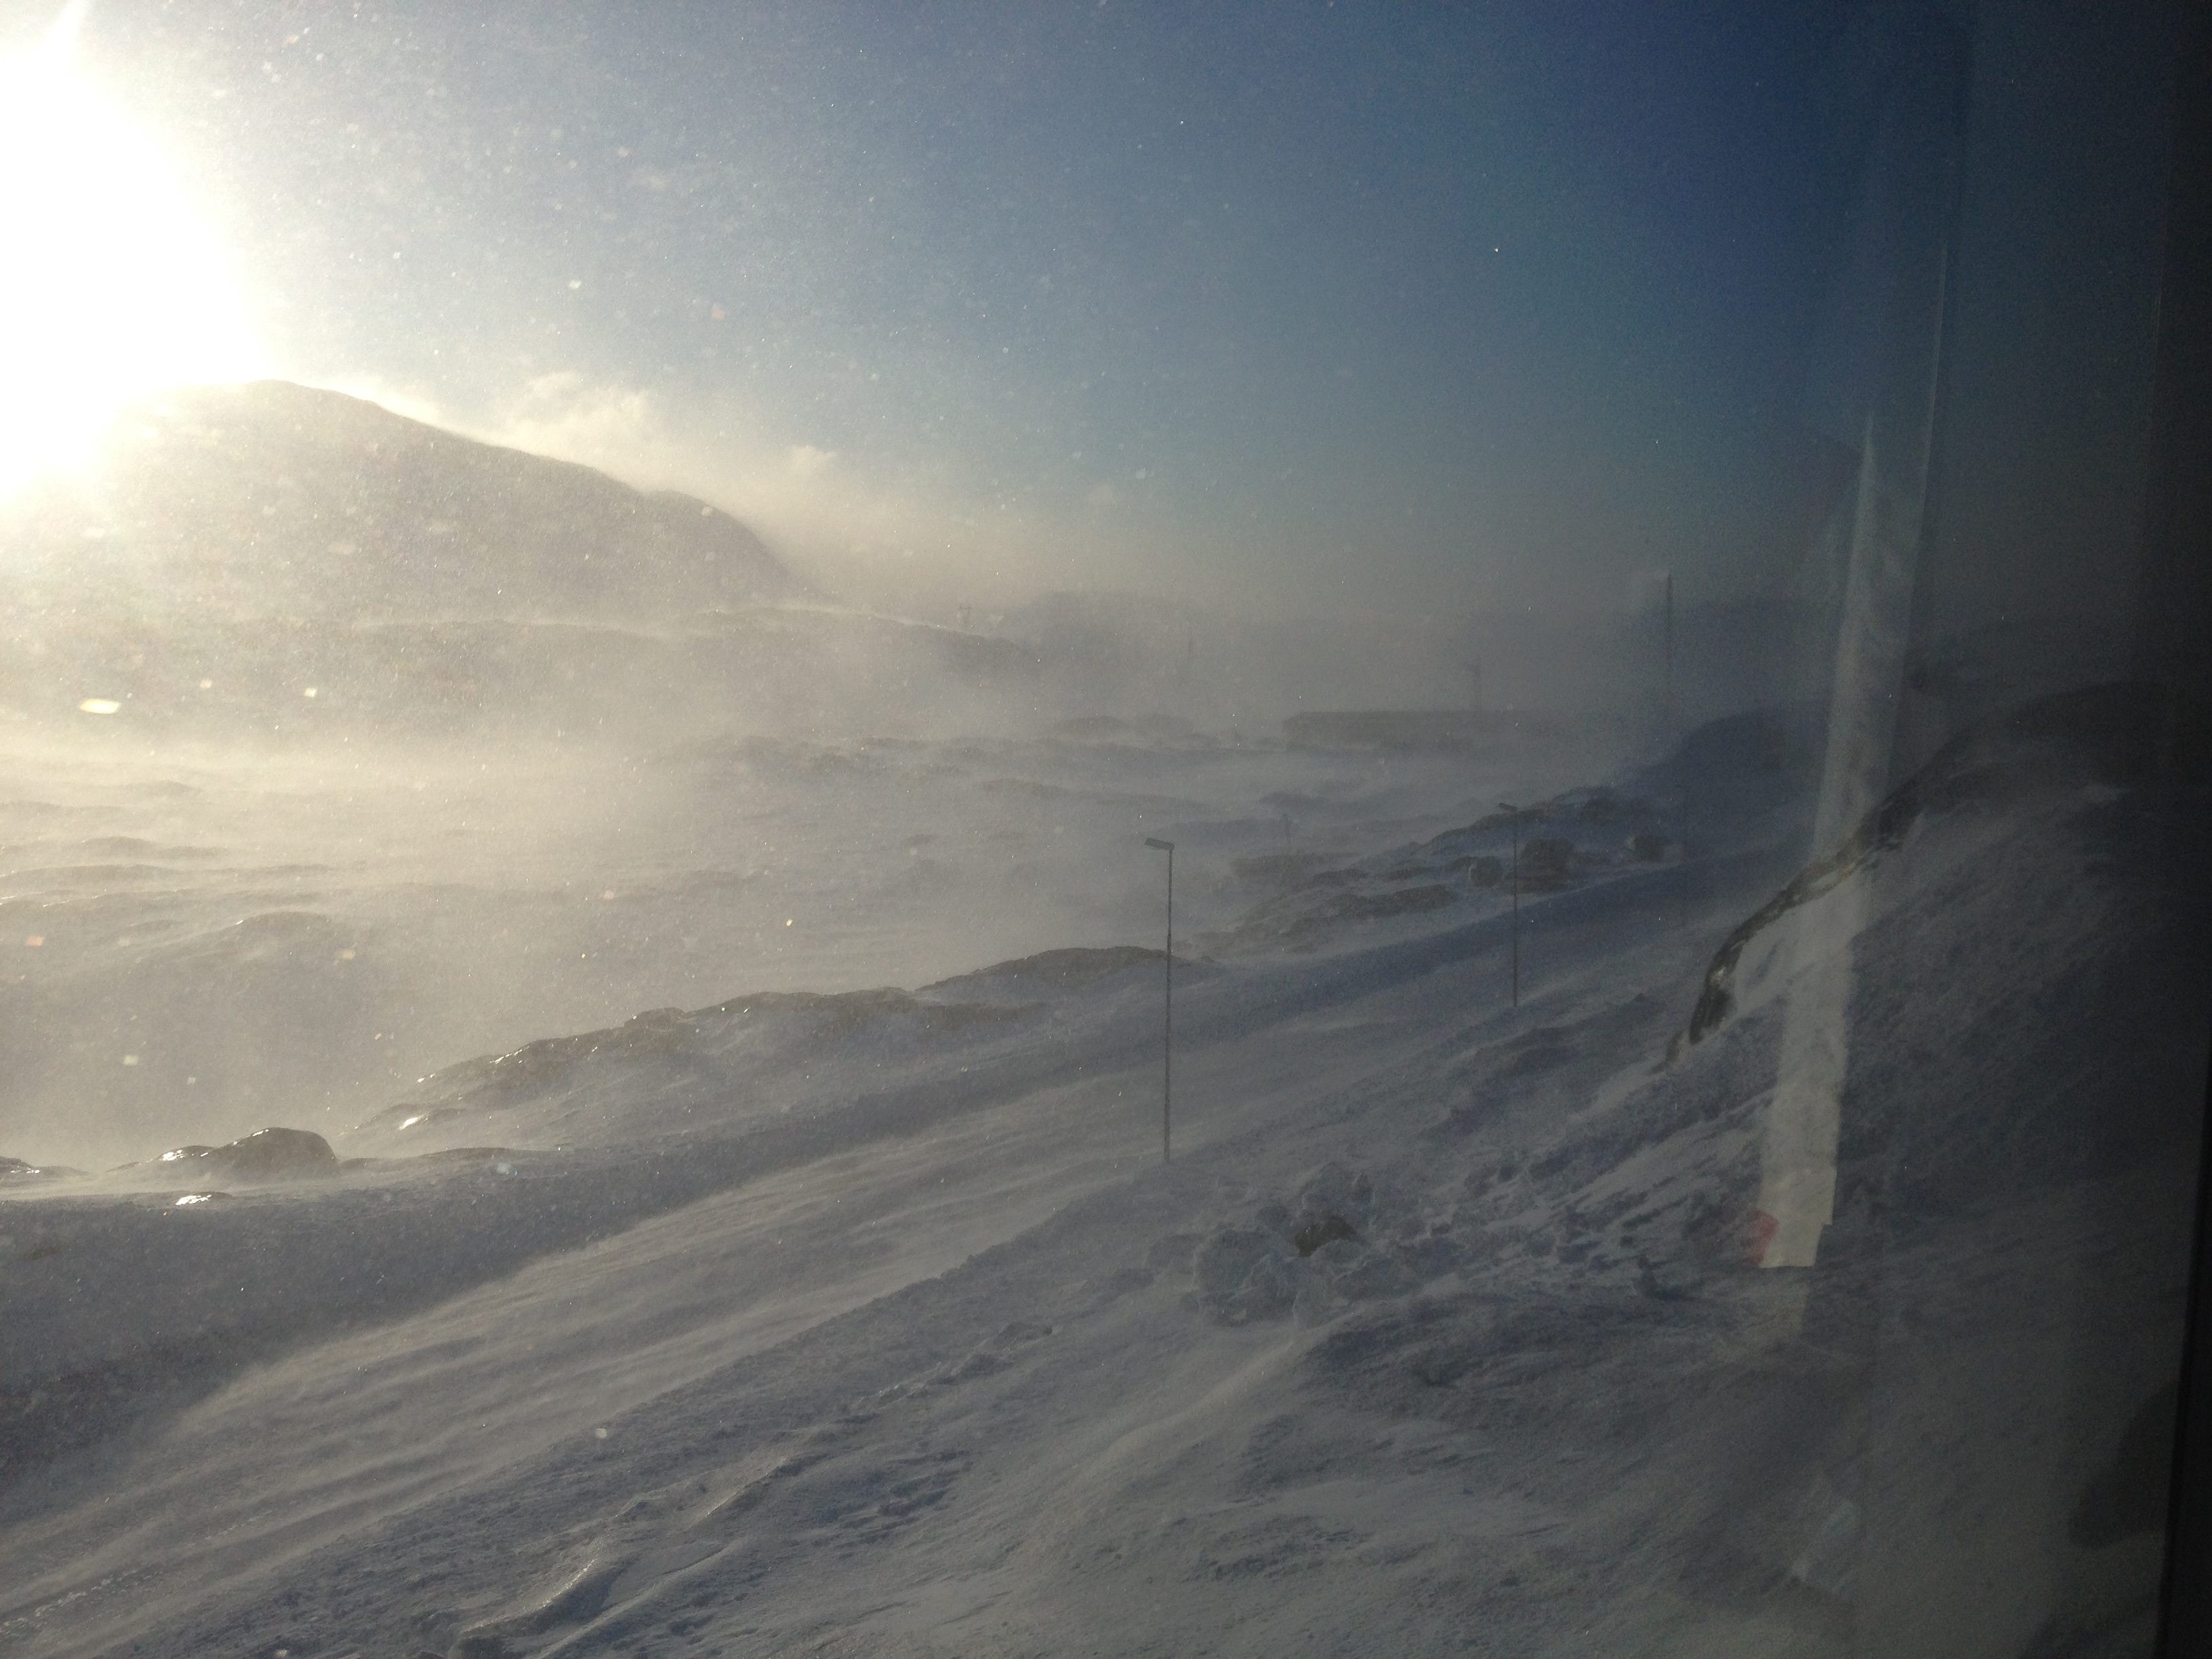 Greenland in February - Geography and Environmental Studies